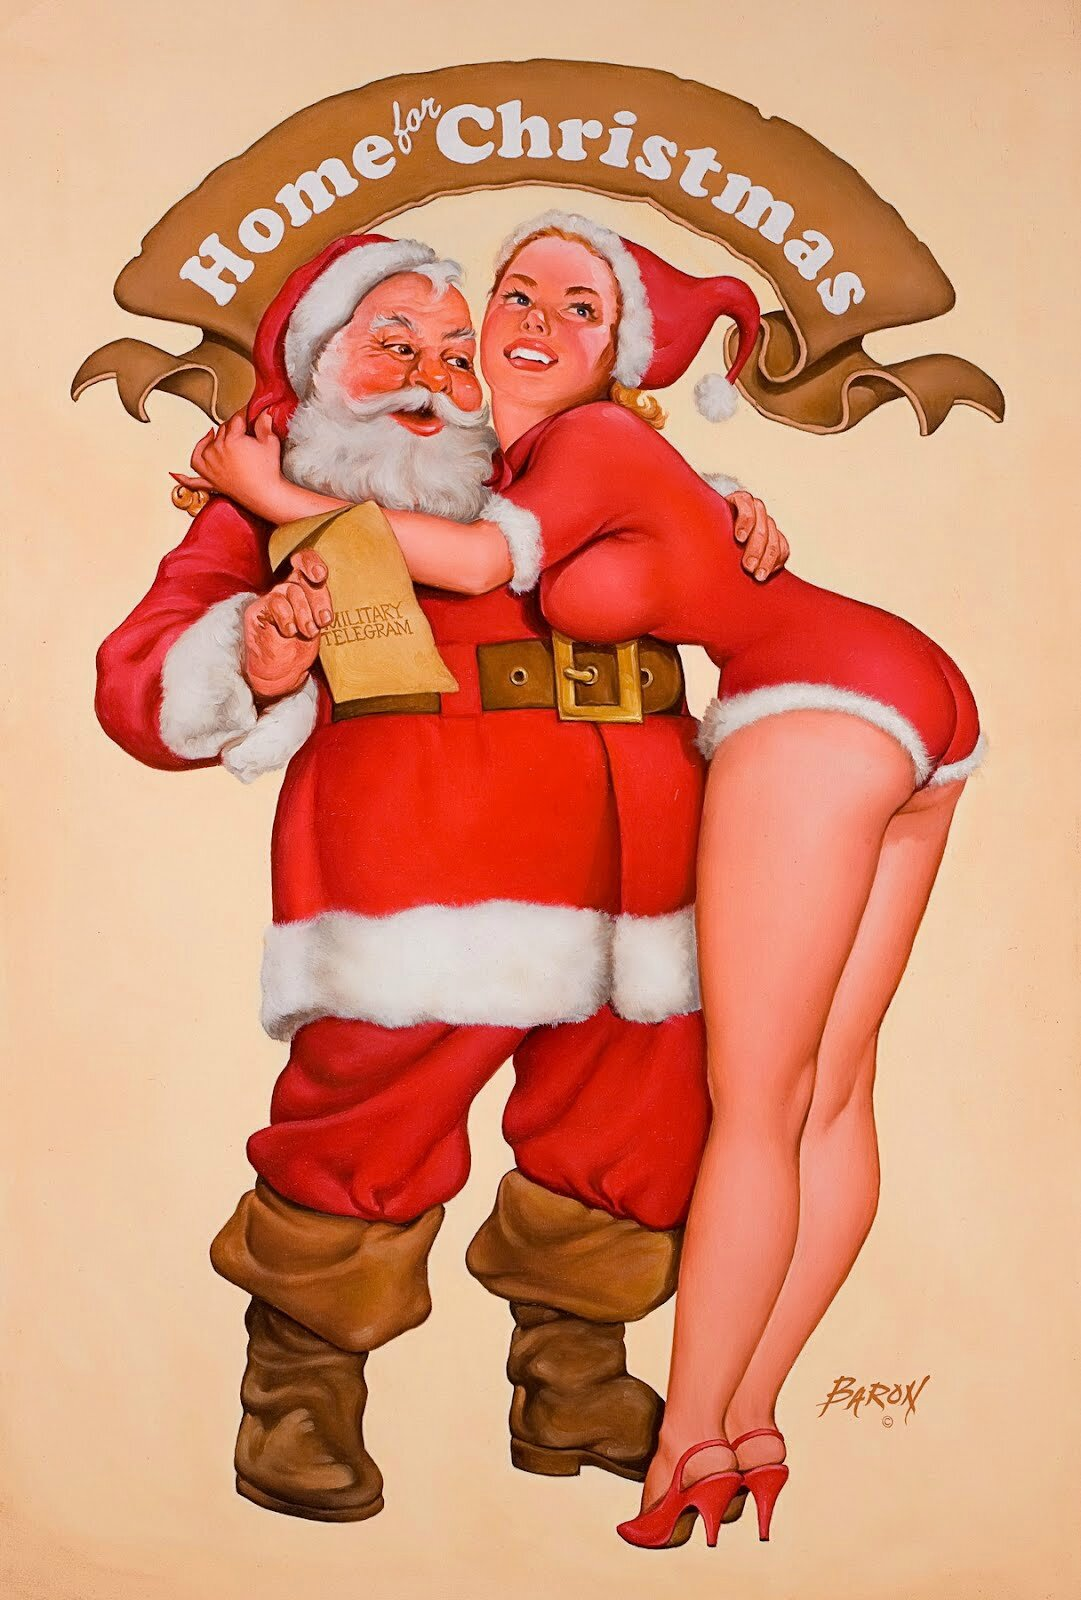 Awesome Pin Up De Noel #11: Pin_up-baron_gerald_von_lind Pin_up-baron_gerald_von_lind2. U003e